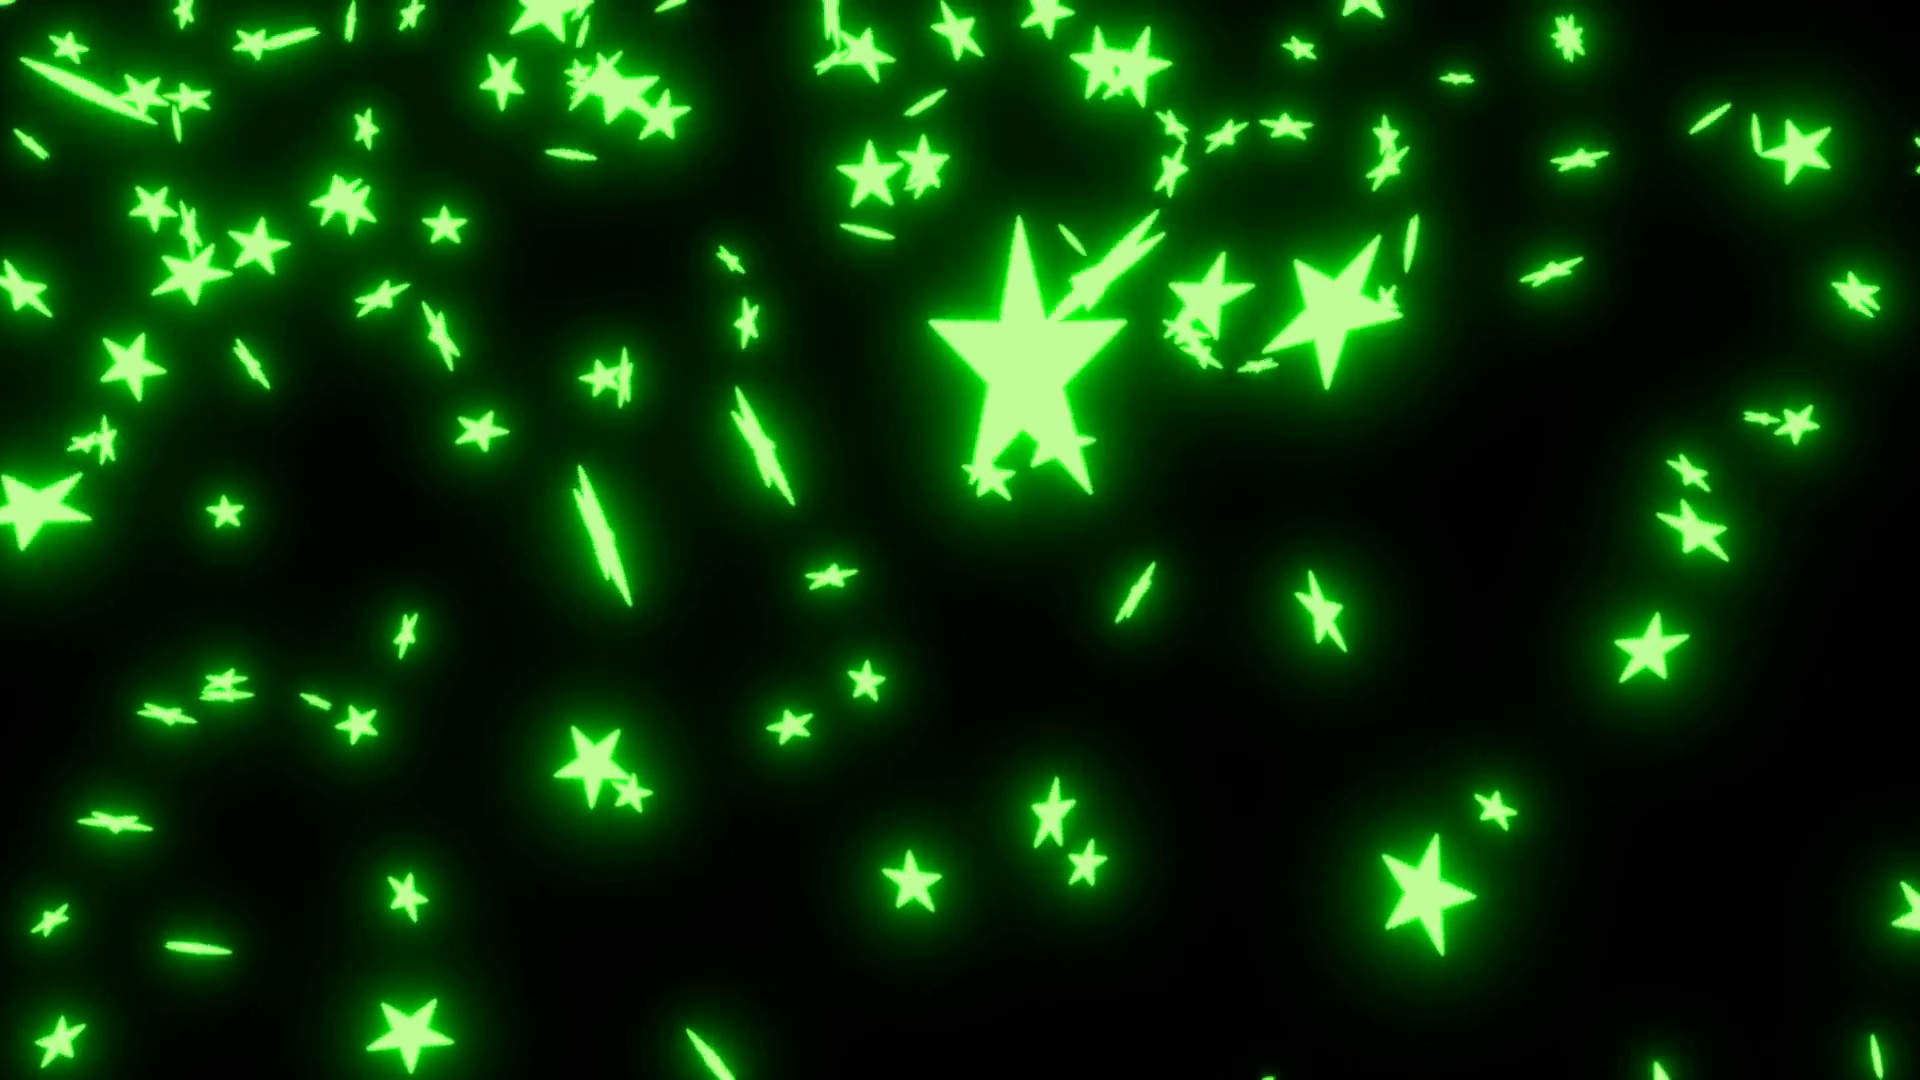 1920x1080 Animated falling neon green stars on black background 2. Motion Background  - VideoBlocks